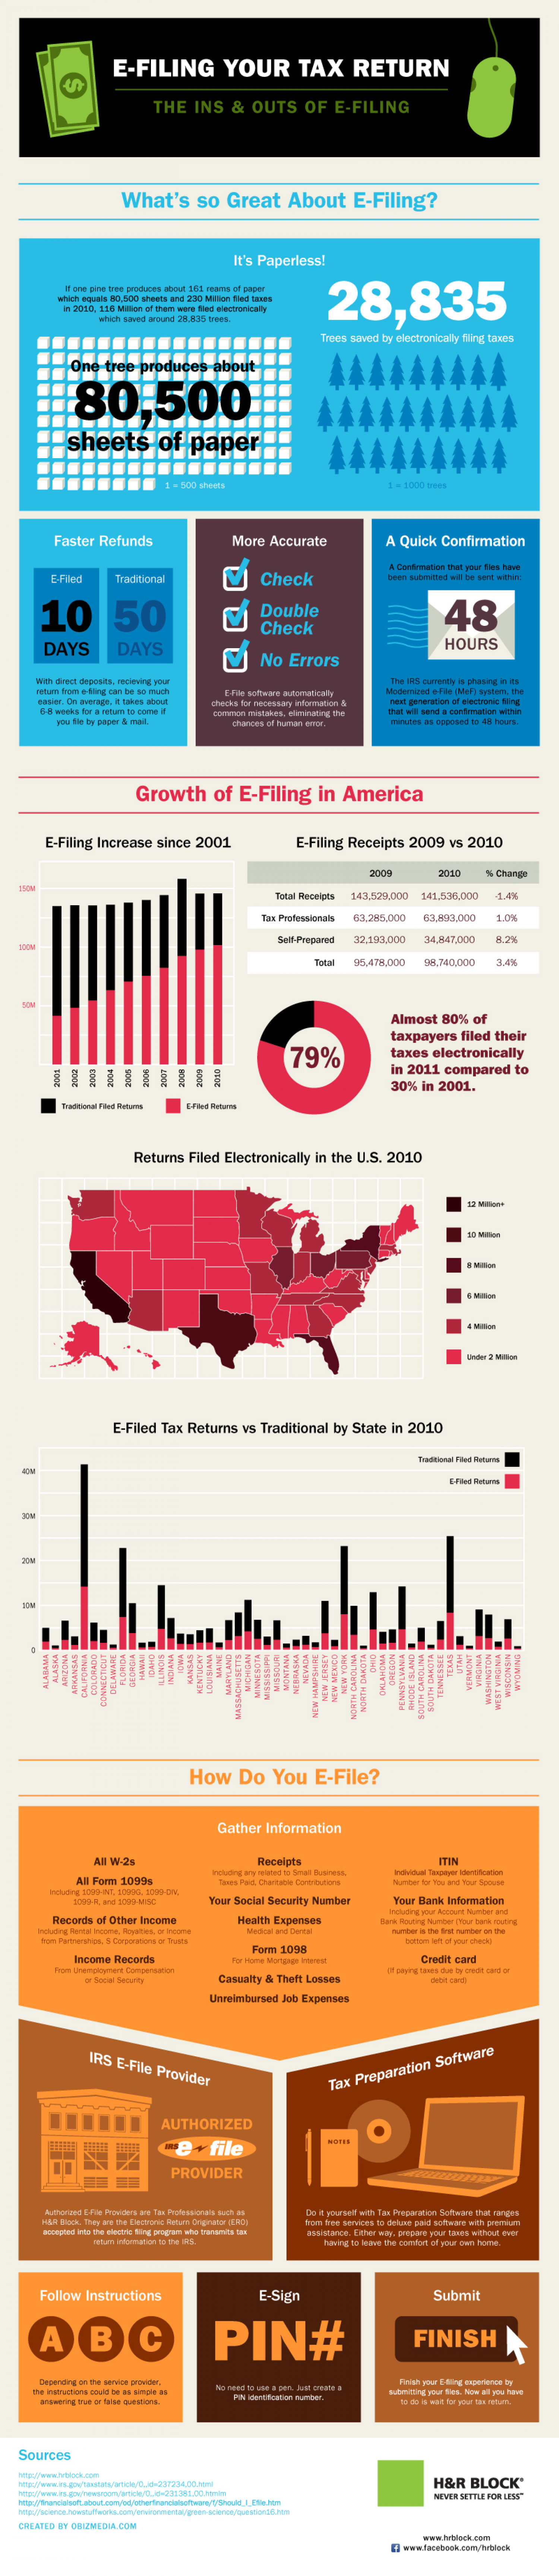 E-Filing Your Taxes: A Look at The Numbers  Infographic